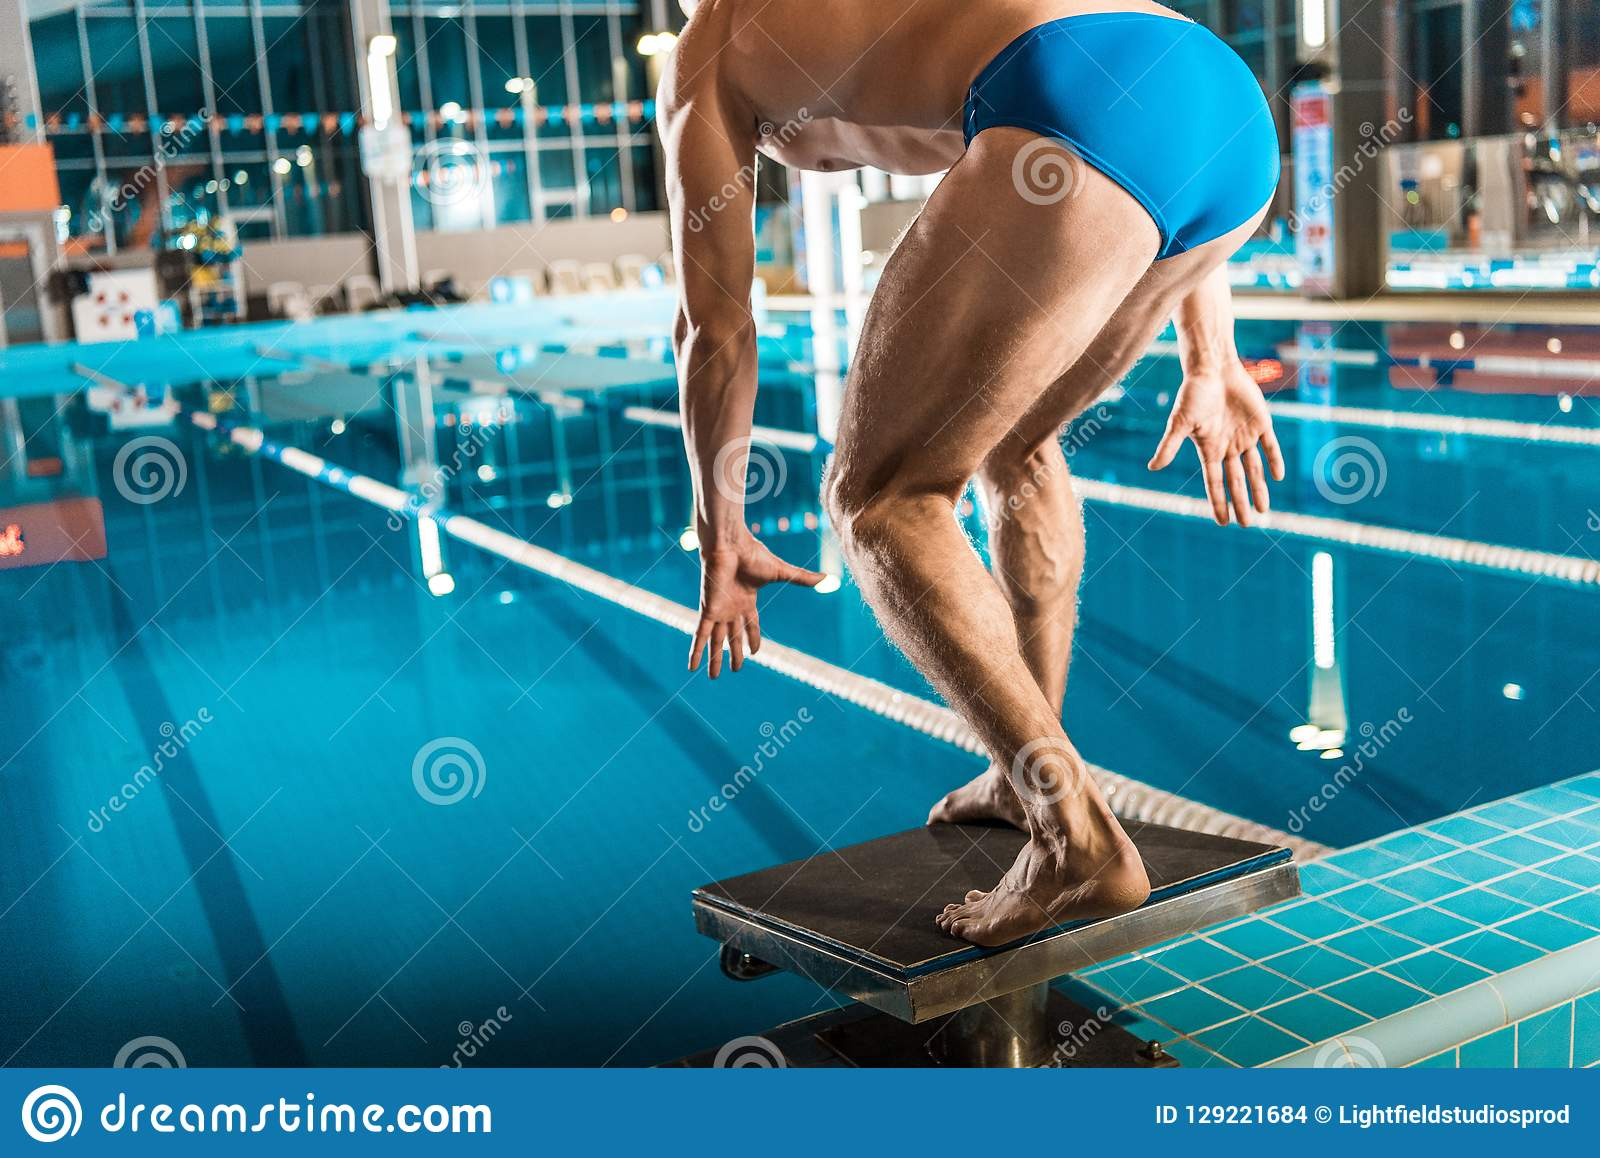 Swimmer Standing On Diving Board Ready To Jump Into Competition ...